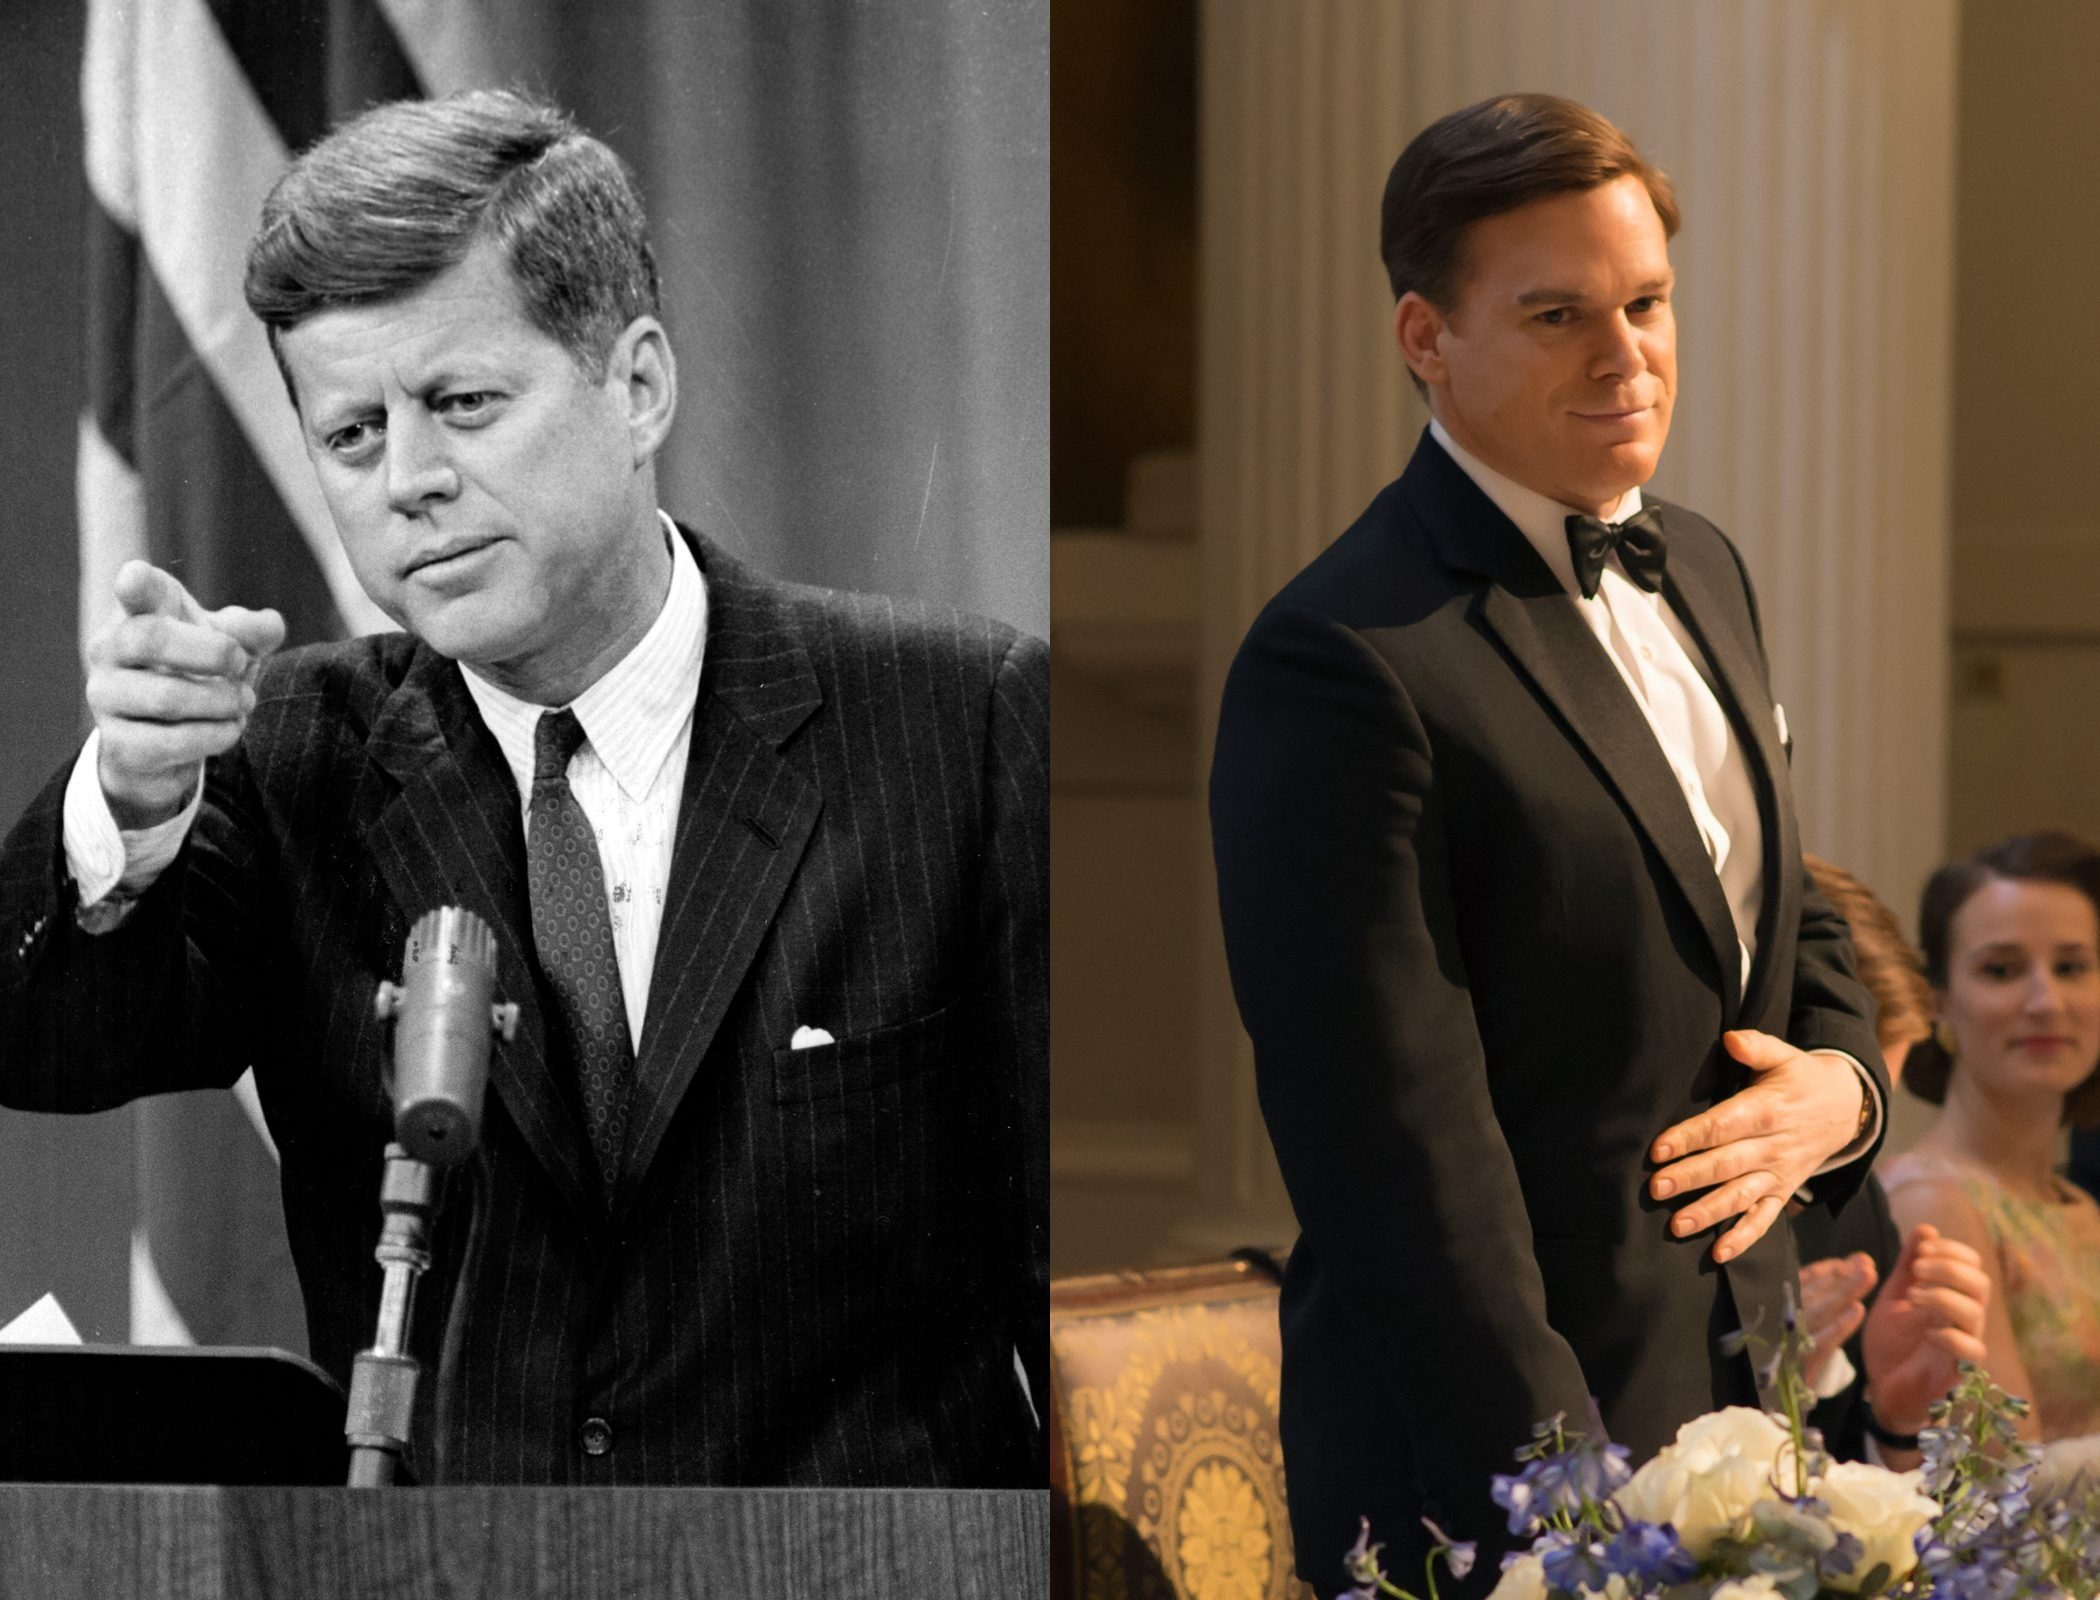 John F. Kennedy played by Michael C. Hall on Netflixs The Crown